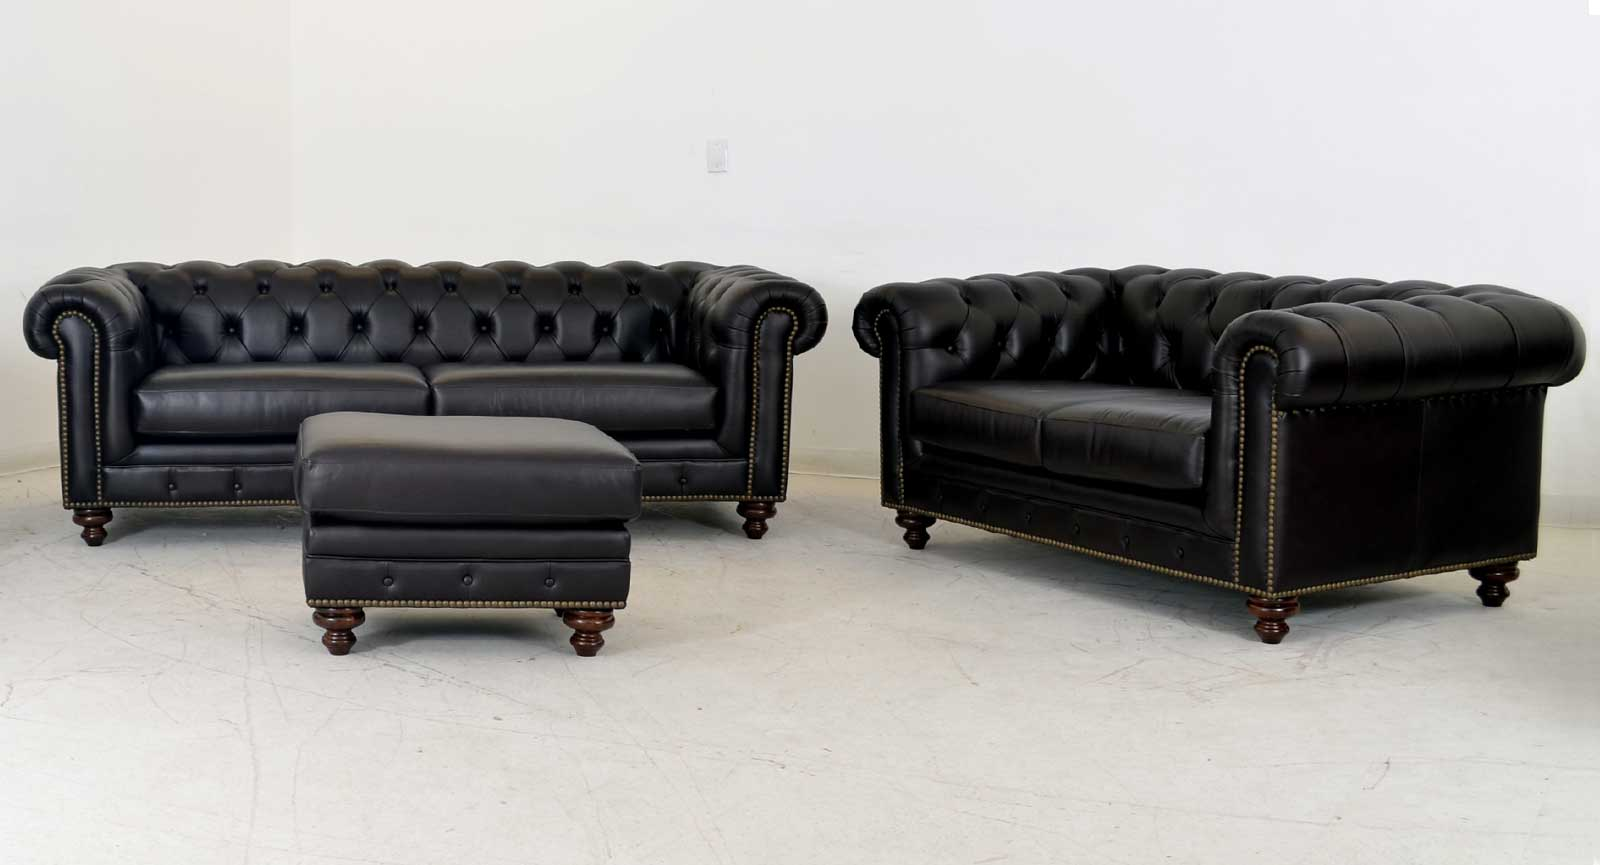 Two Seat Sofa Ottoman Loveseat